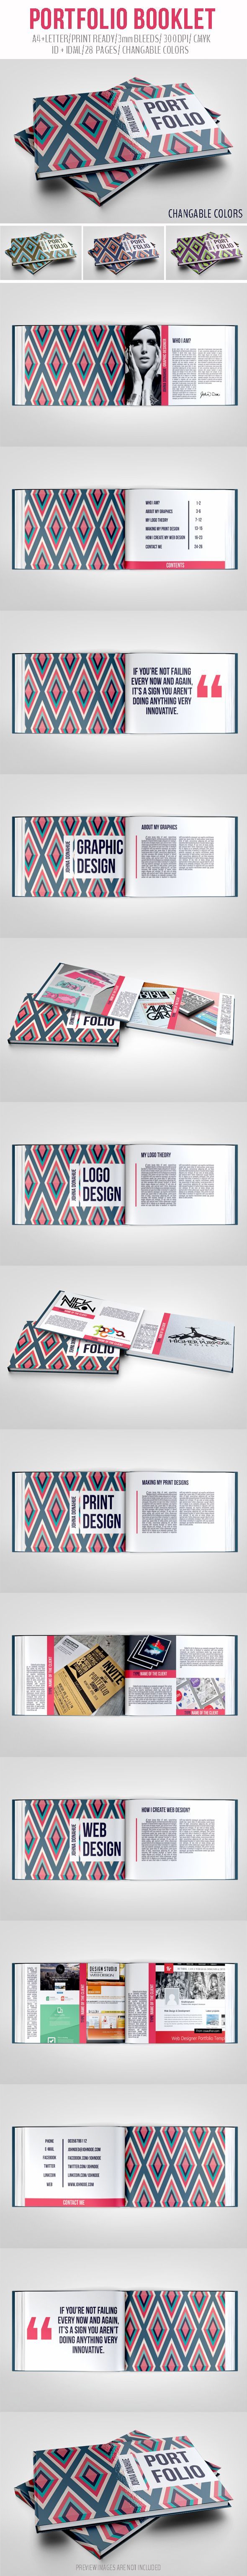 Portfolio Booklet by crew55design, via Behance---this is awesome and such a good idea!